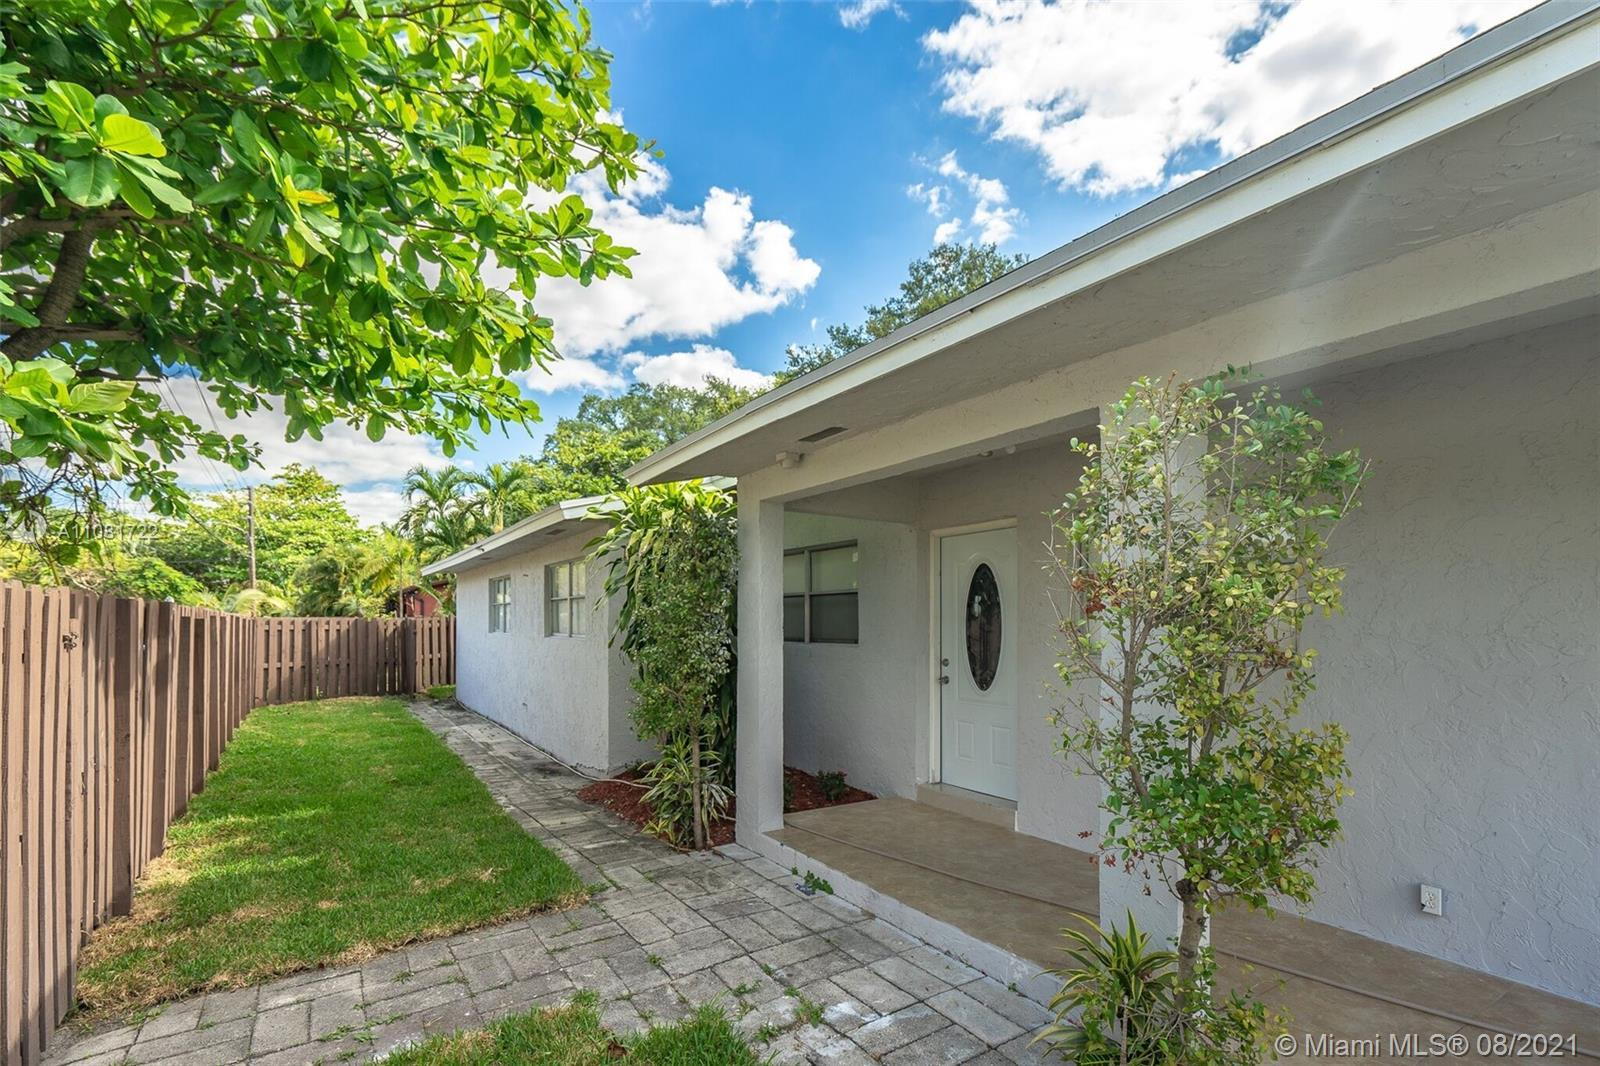 BACK ON THE MARKET AND PRICE REDUCED FOR A QUICK SALE! COME SEE THIS FULLY RENOVATED 5 BED / 3 BATH